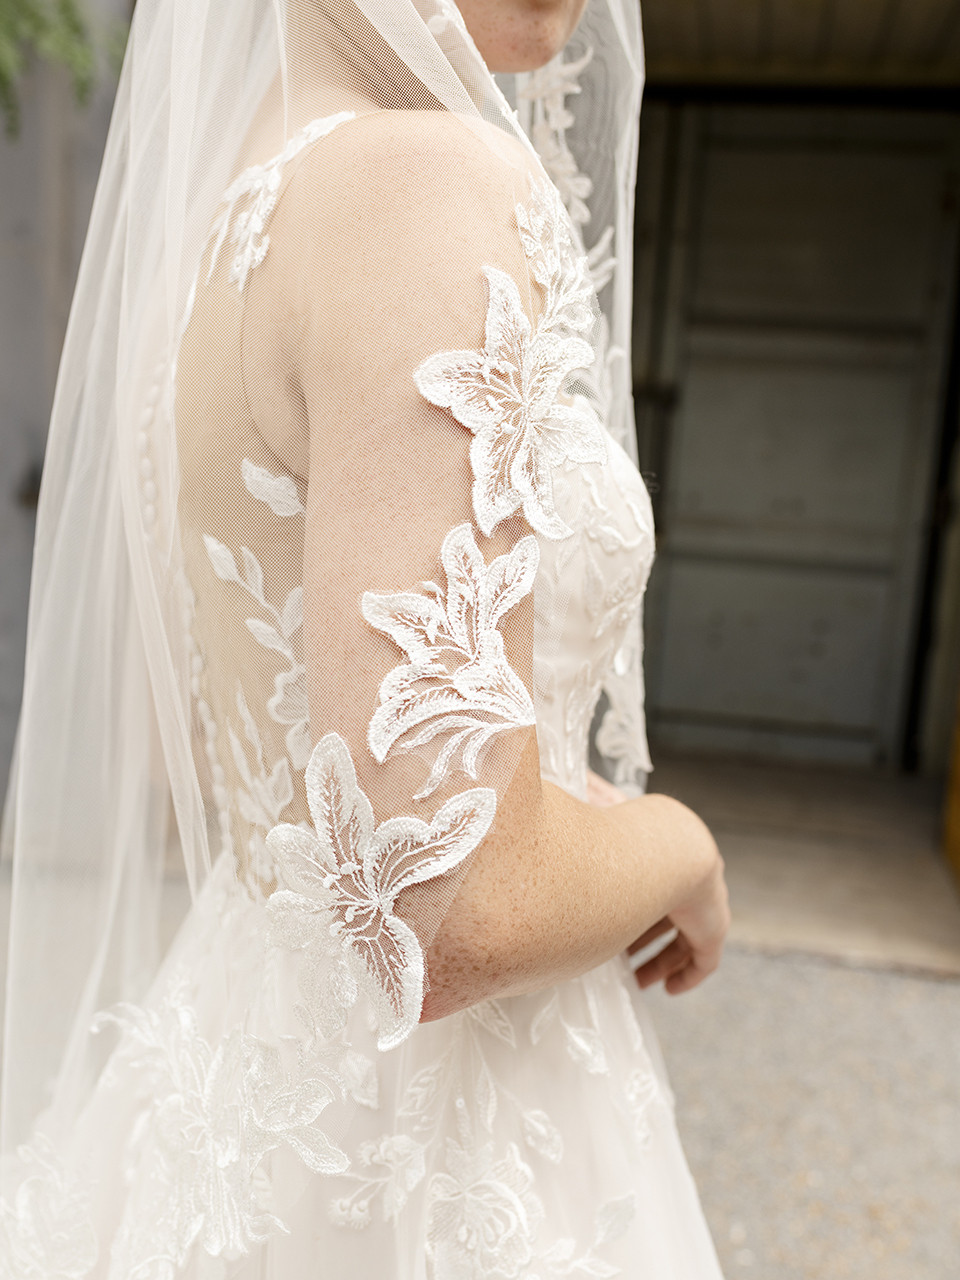 En Vogue Bridal Style V2288SF - English Tulle Veil With Sequined Lace Appliques - 41 Inches